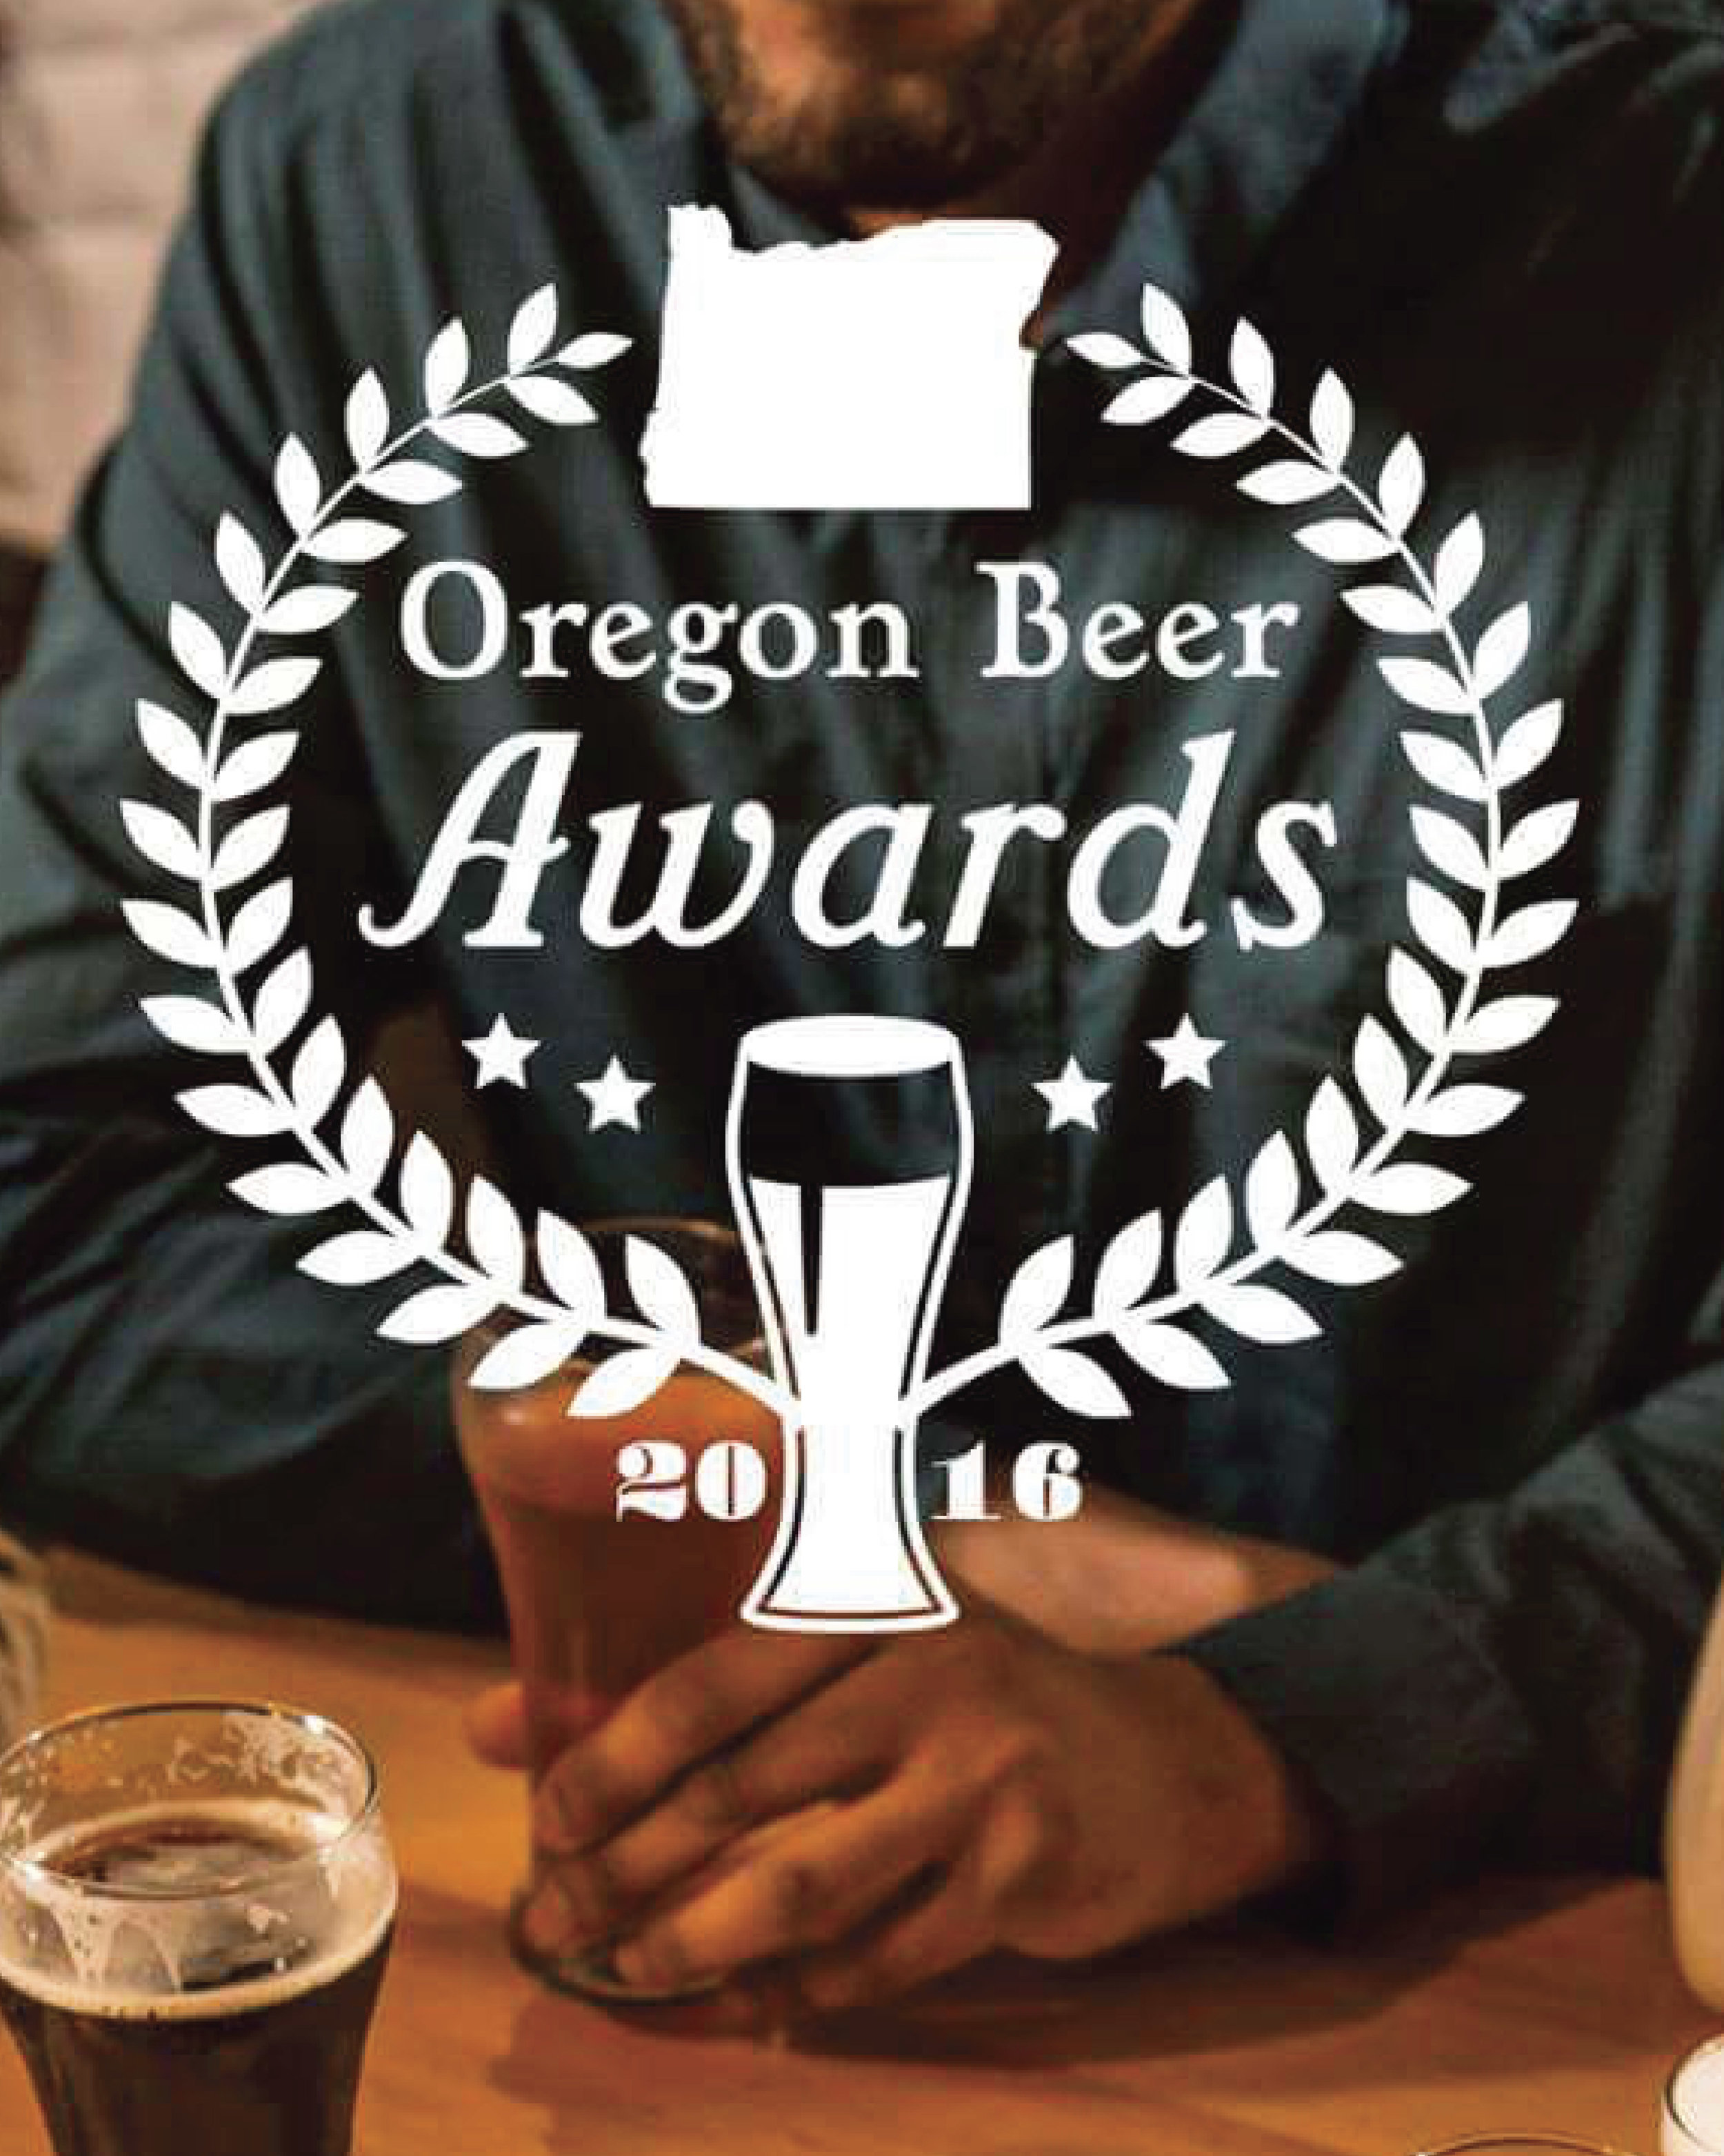 OREGON BEER AWARDS, EVENT - Our annual beer awards celebrating the best beer and brewers in the state.